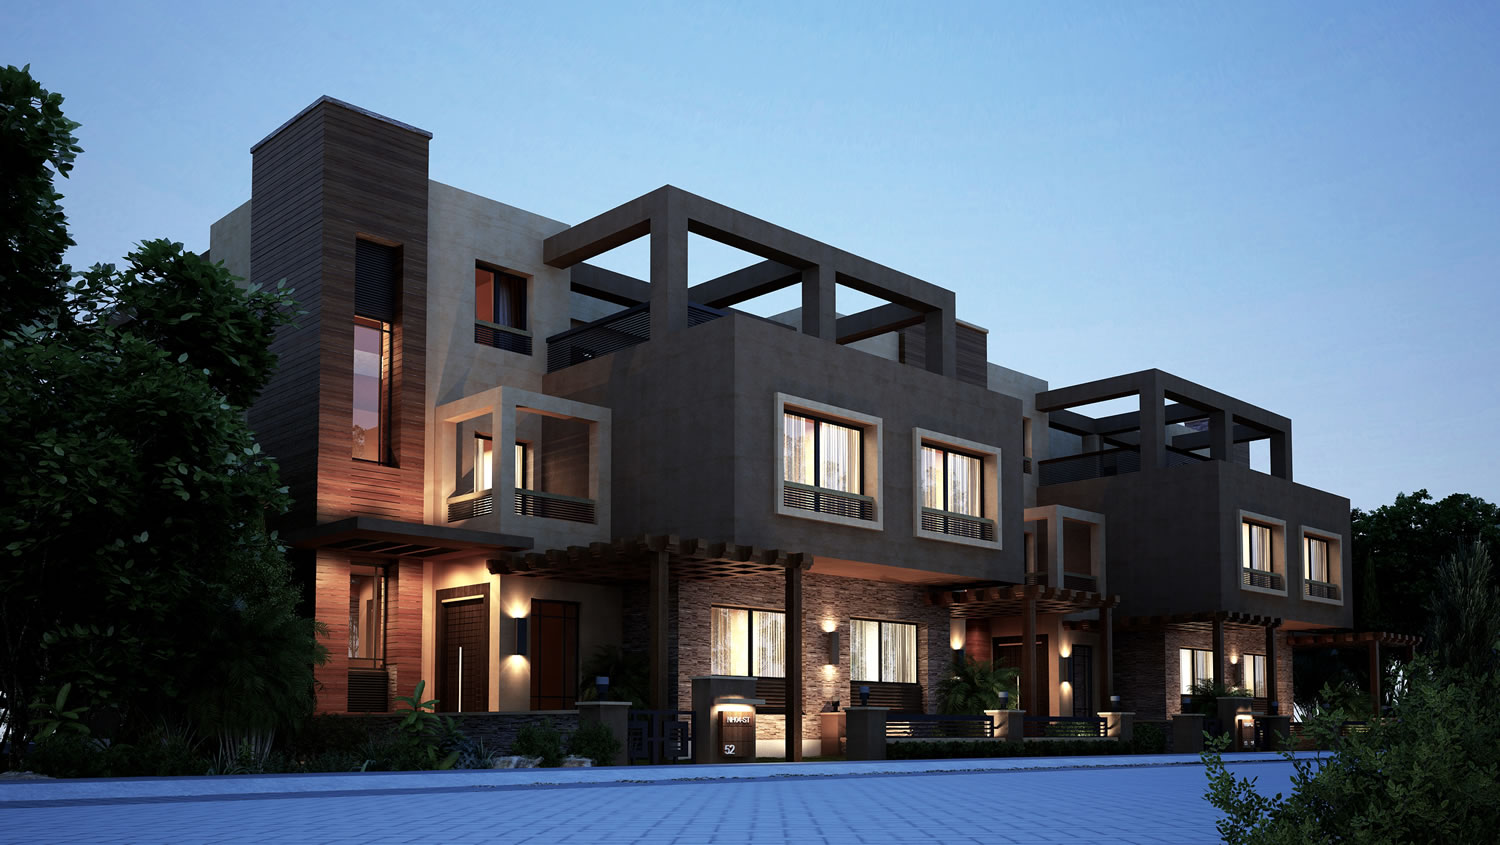 Townhome 02